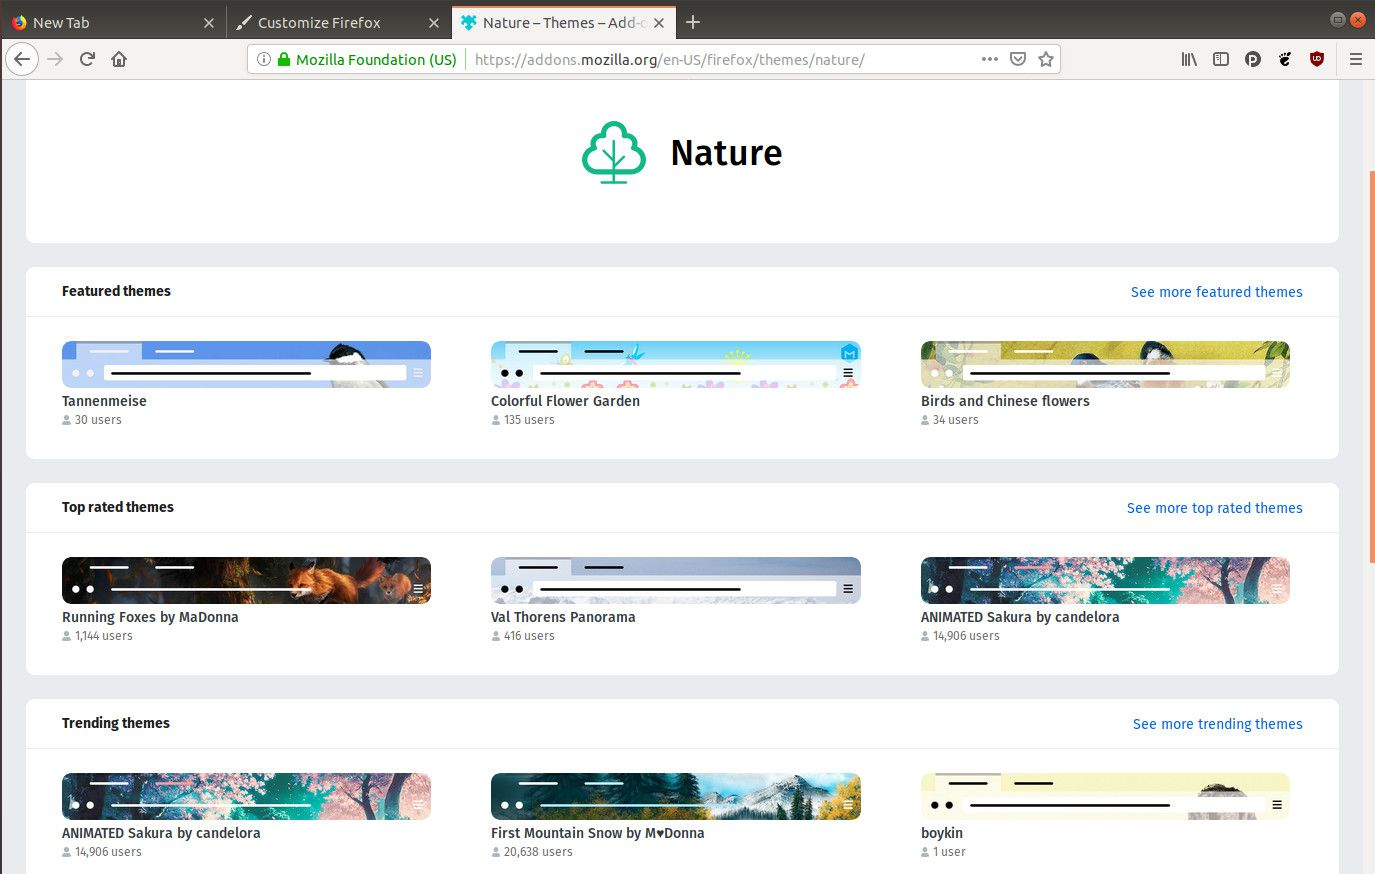 How to Change Themes in Firefox